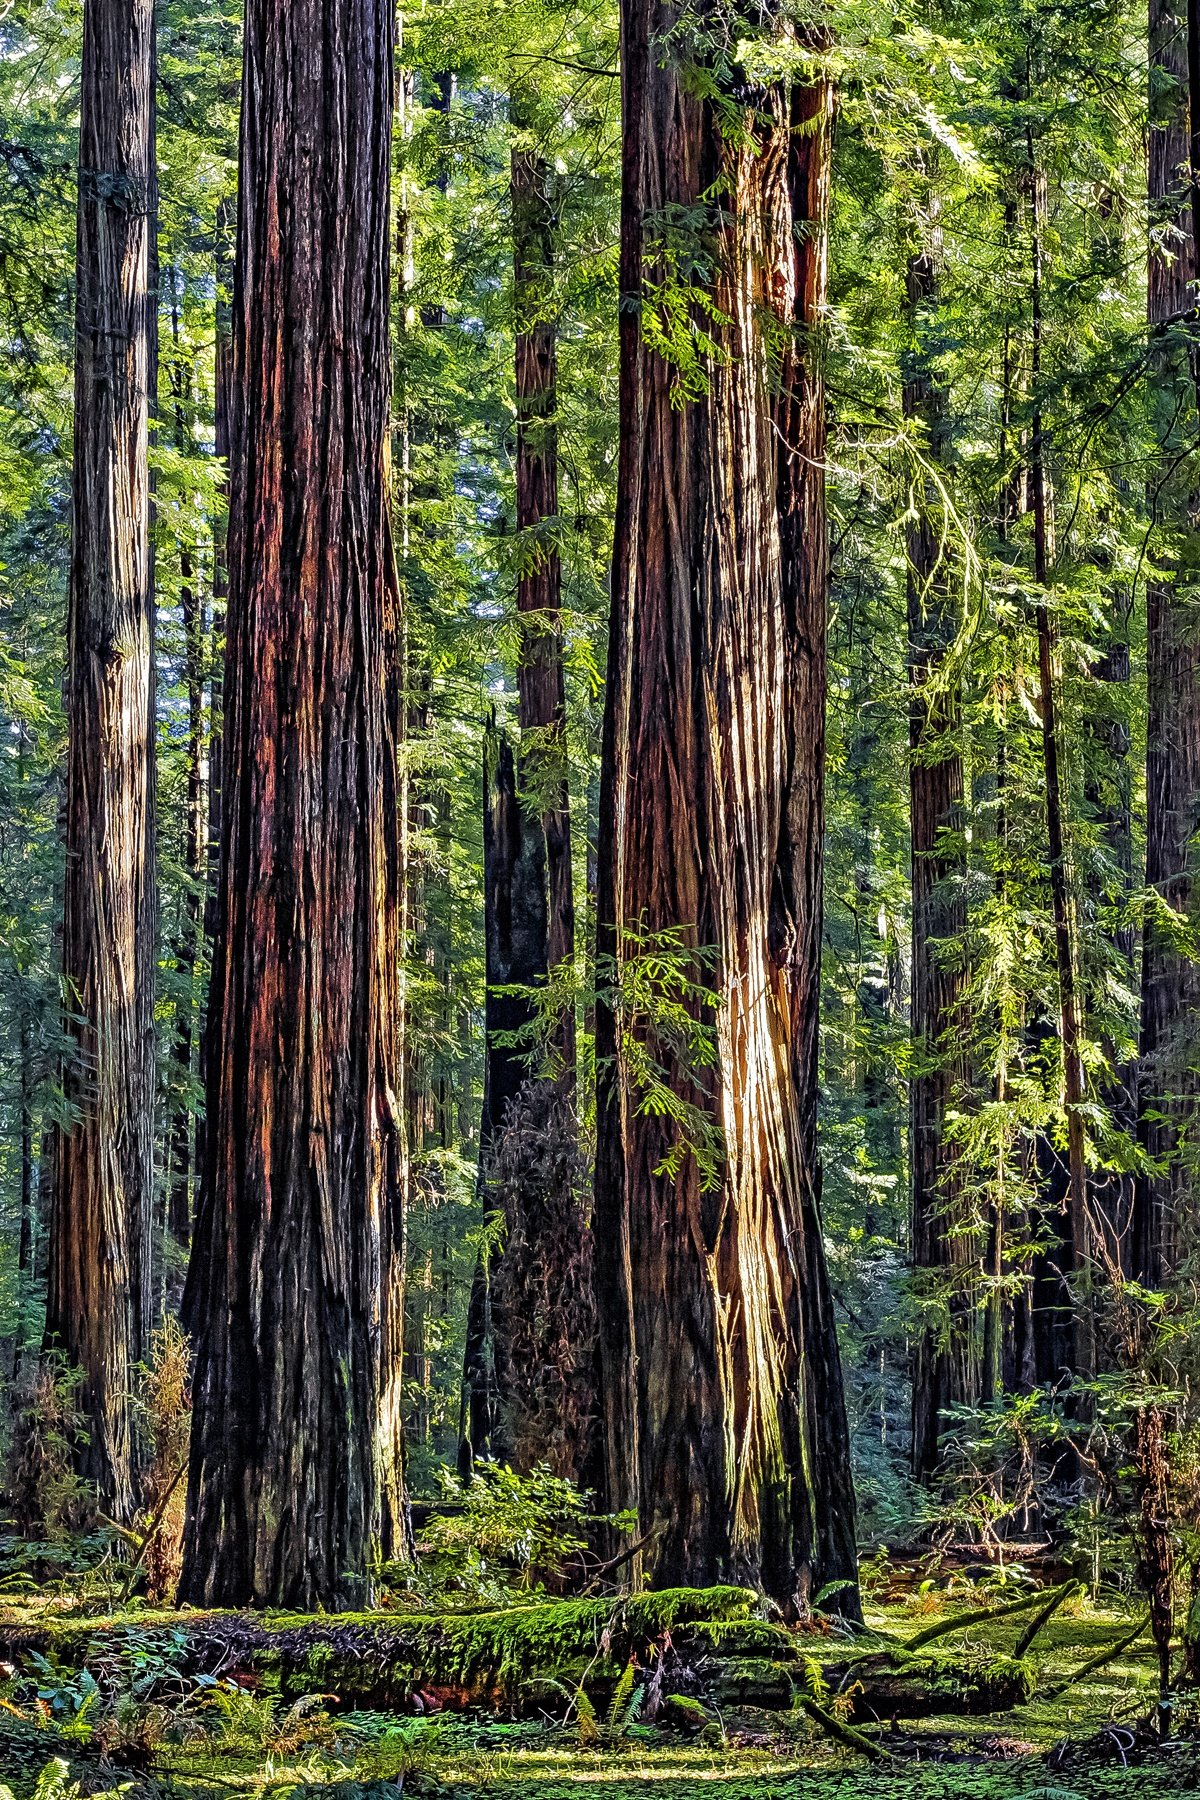 STANDING TALL - It's difficult to describe the wonder and magnificance of the California redwoods. Even the photograph doesn't begin to inspire like the real thing. If you haven't seen them, I highly recommend the trip. You will be amazed.